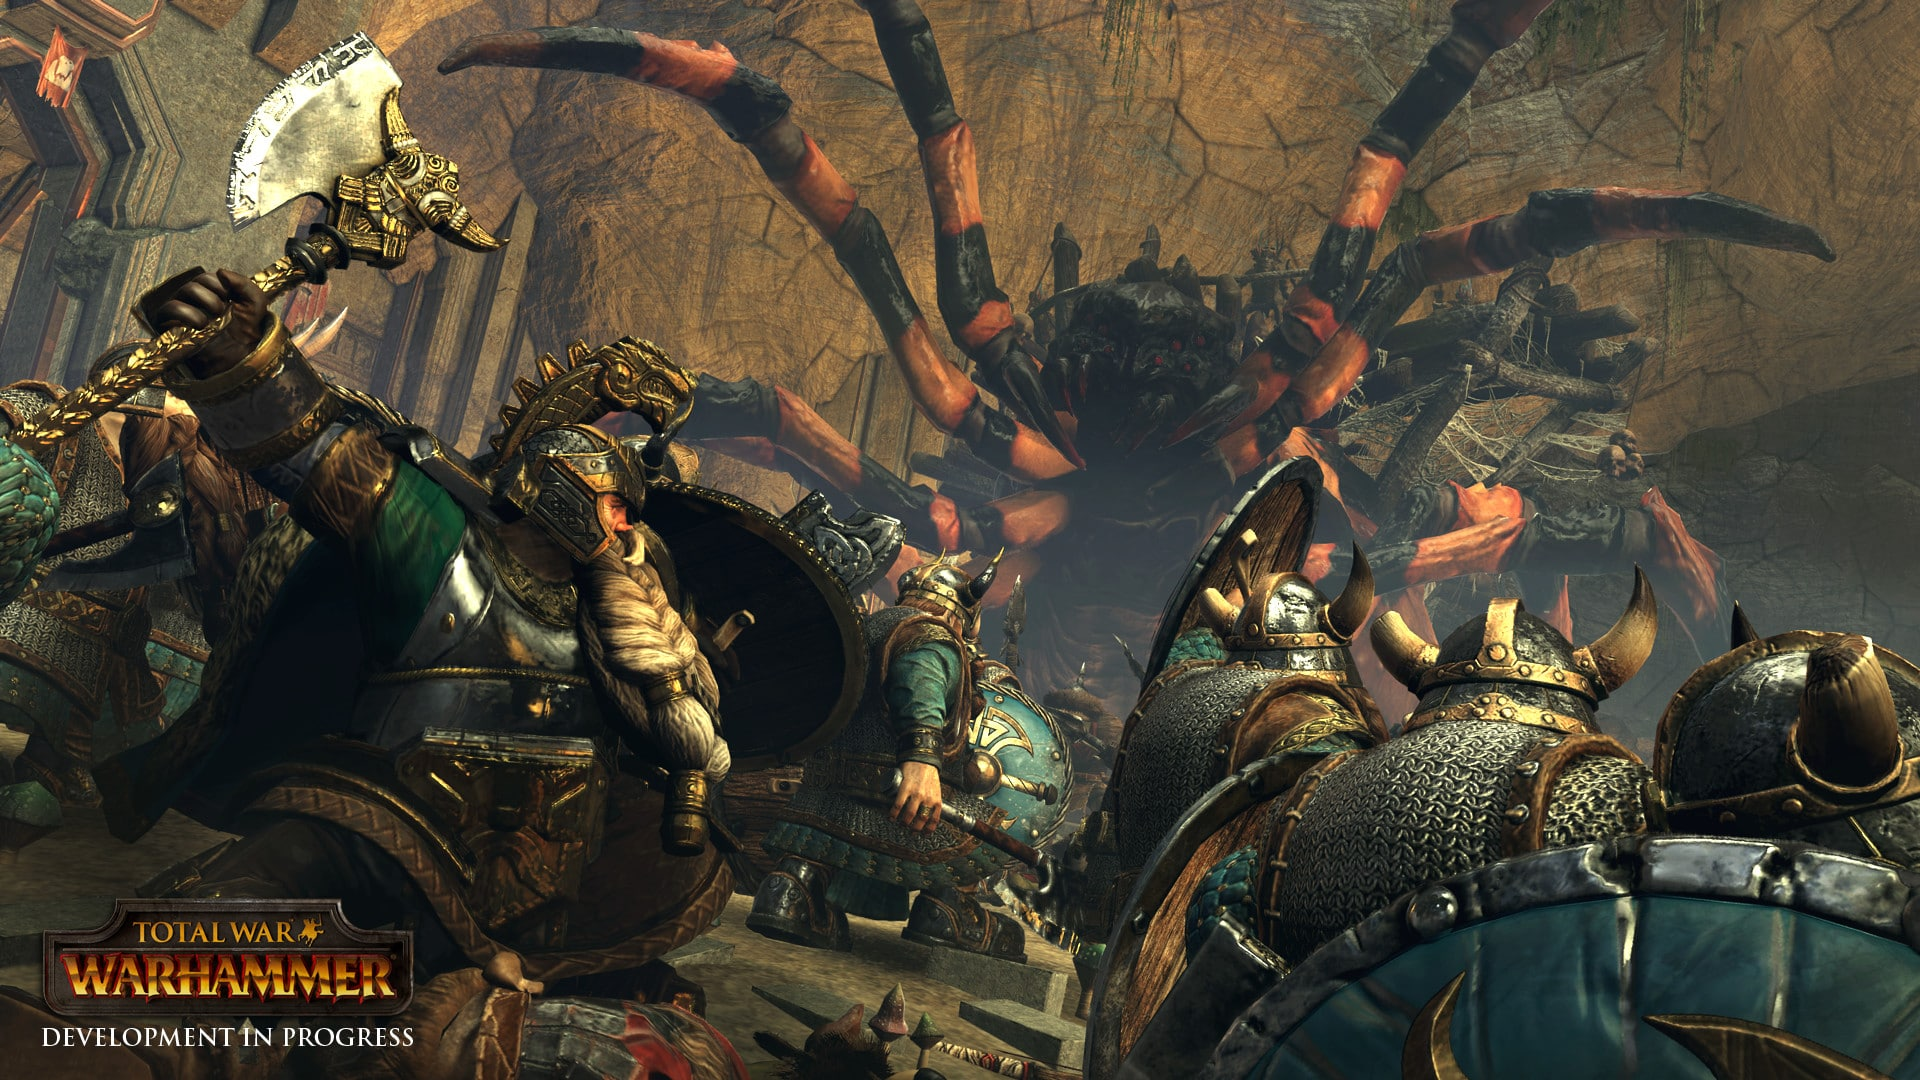 Total War: Warhammer review videogamer.gr